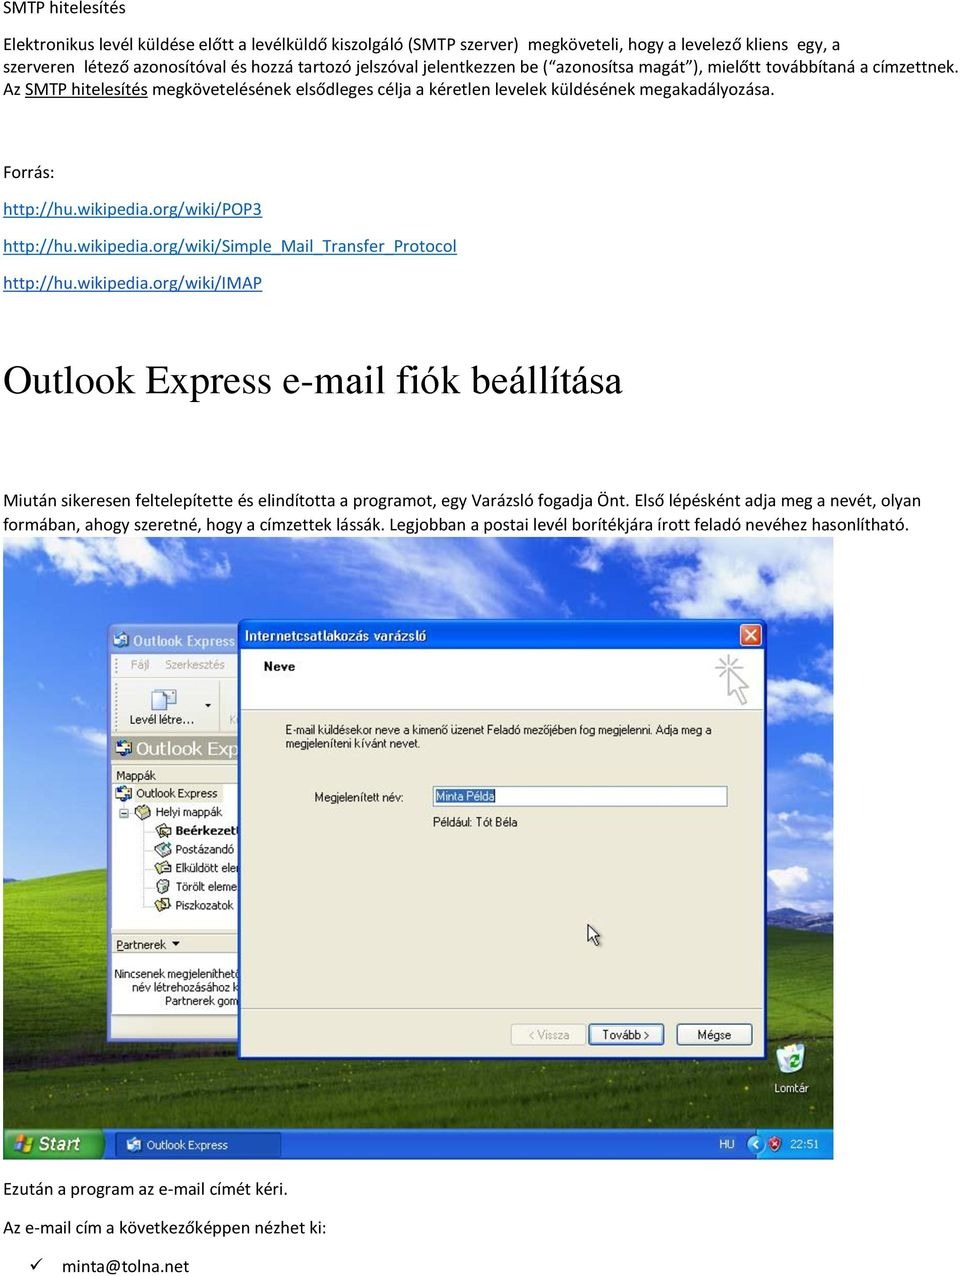 wikipedia.org/wiki/pop3 http://hu.wikipedia.org/wiki/simple_mail_transfer_protocol http://hu.wikipedia.org/wiki/imap Outlook Express e-mail fiók beállítása Miután sikeresen feltelepítette és elindította a programot, egy Varázsló fogadja Önt.